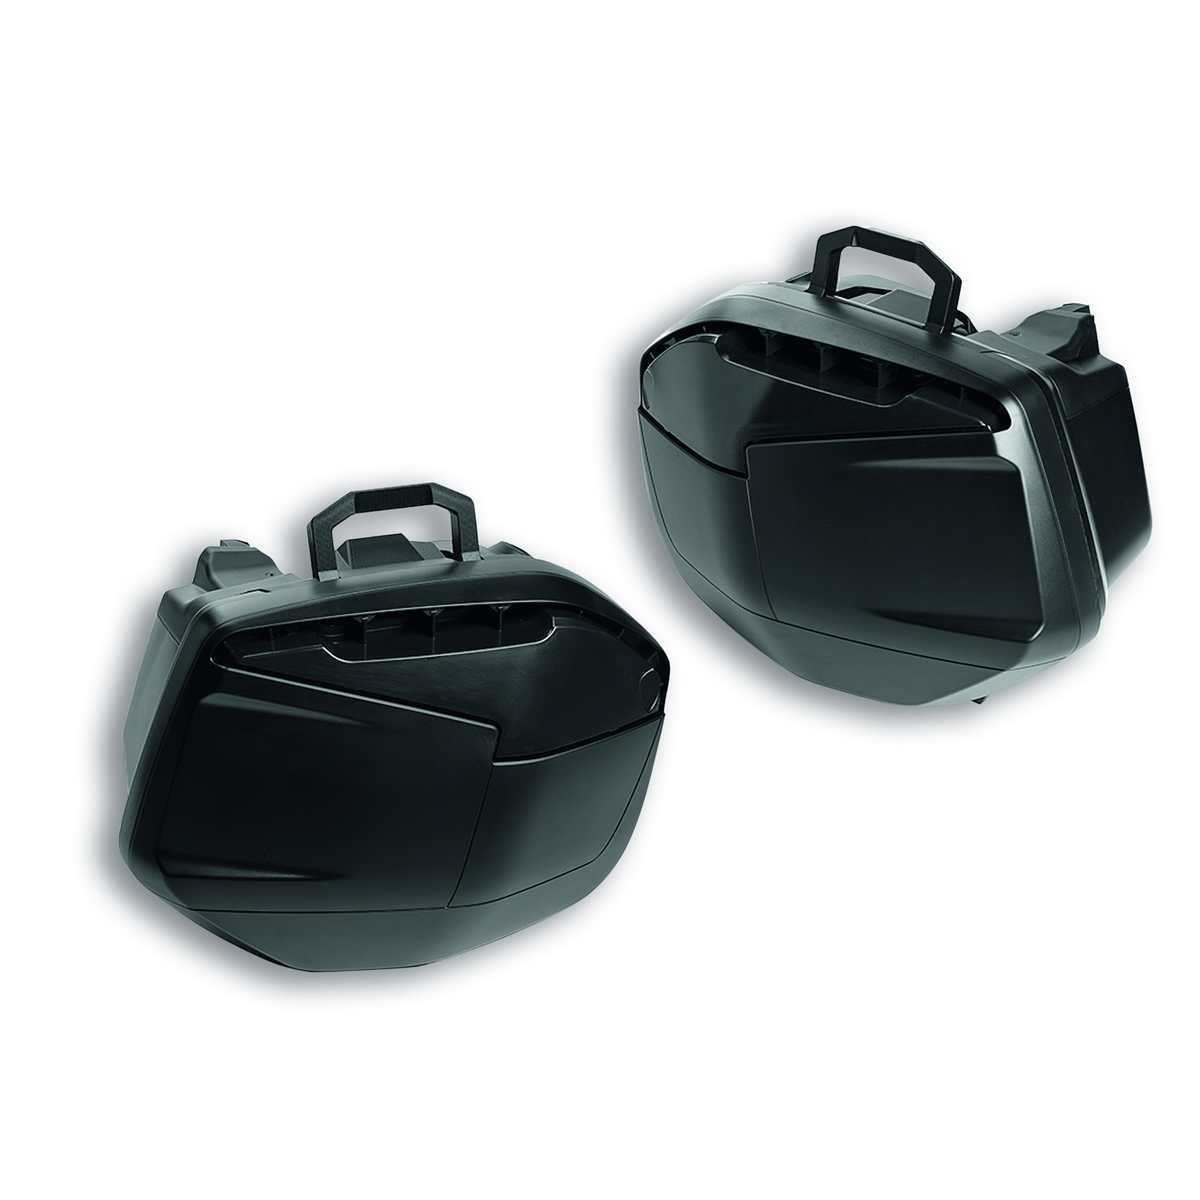 Set of rigid side panniers.